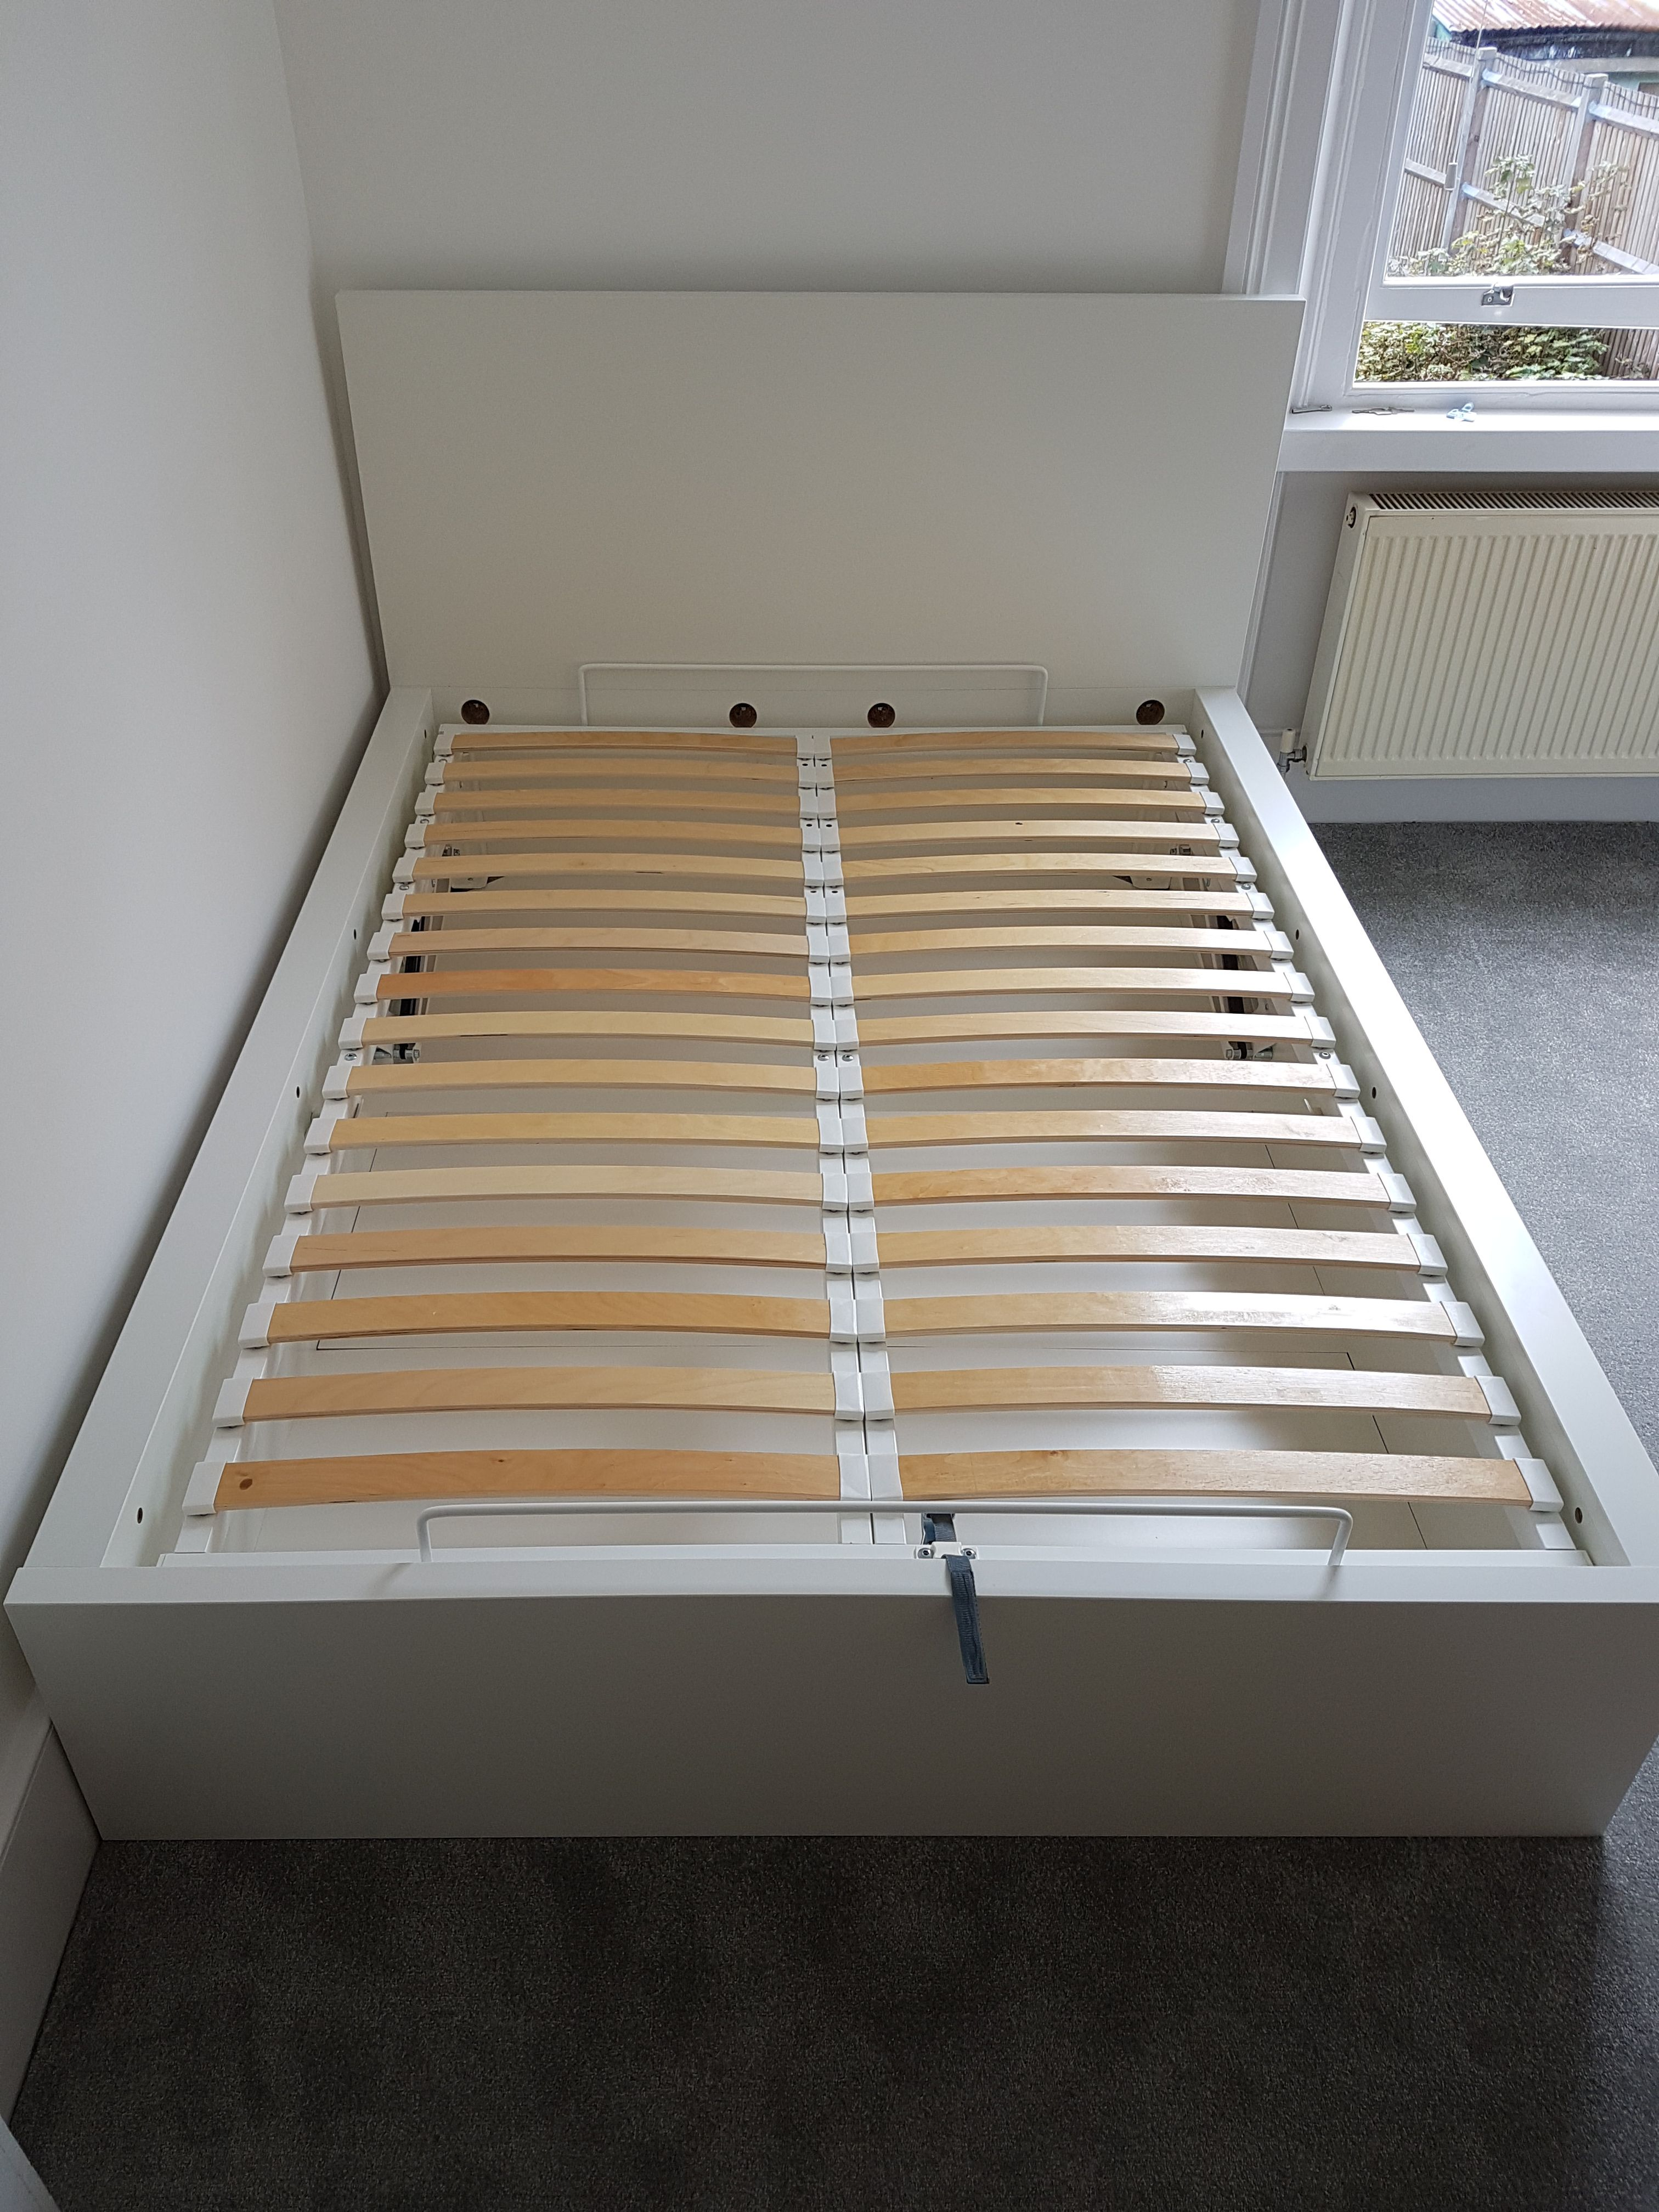 Ikea Malm Ottoman Bed With A Storage Space Ikea Furniture